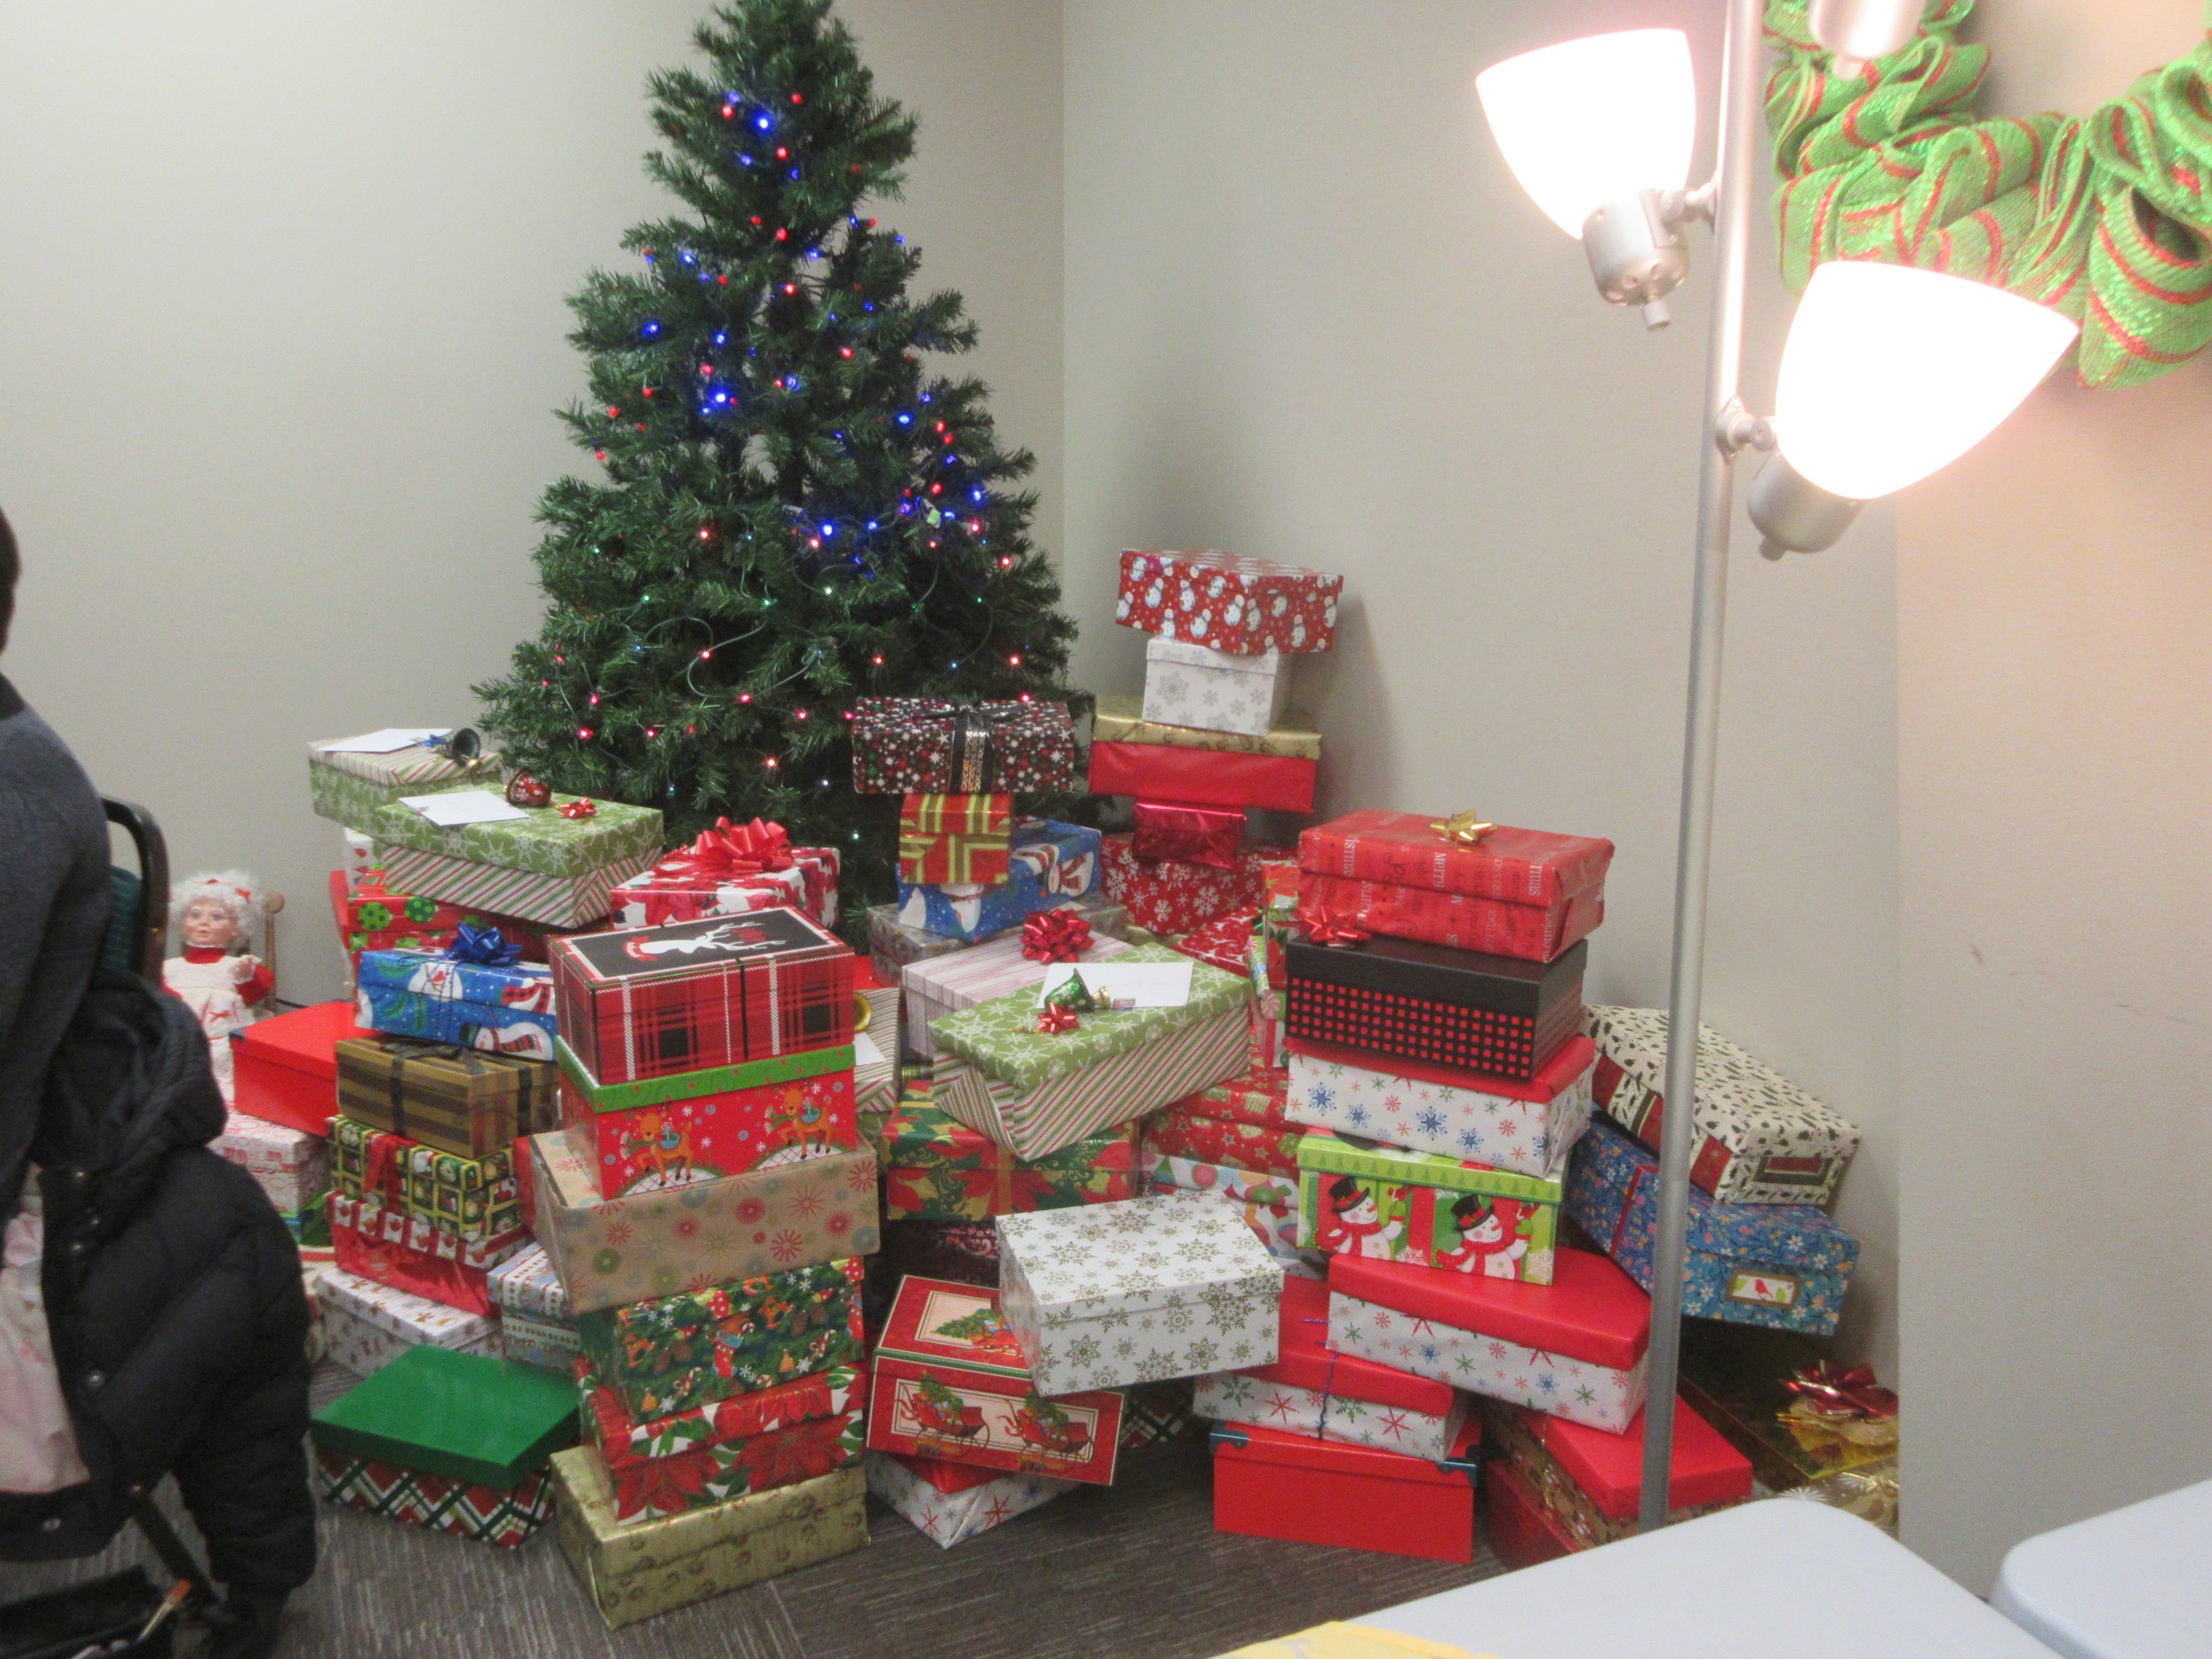 the shoebox project - gifts for women-in-need